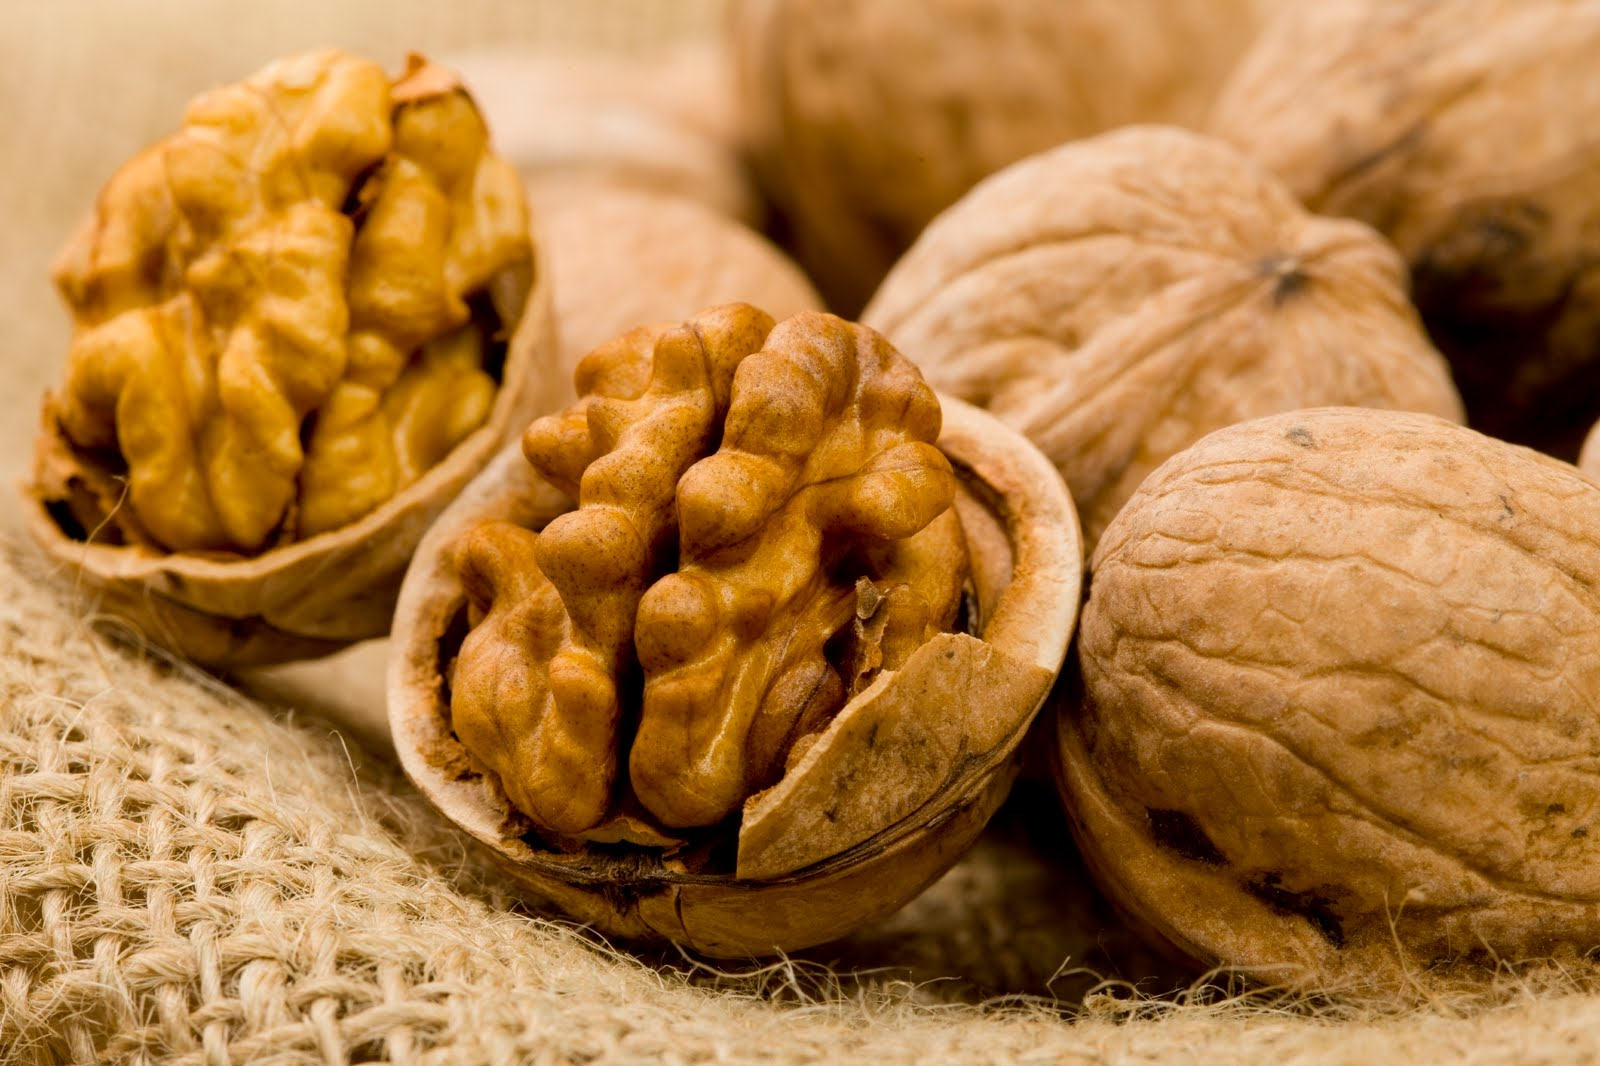 Walnuts prevent and treat Alzheimer's disease